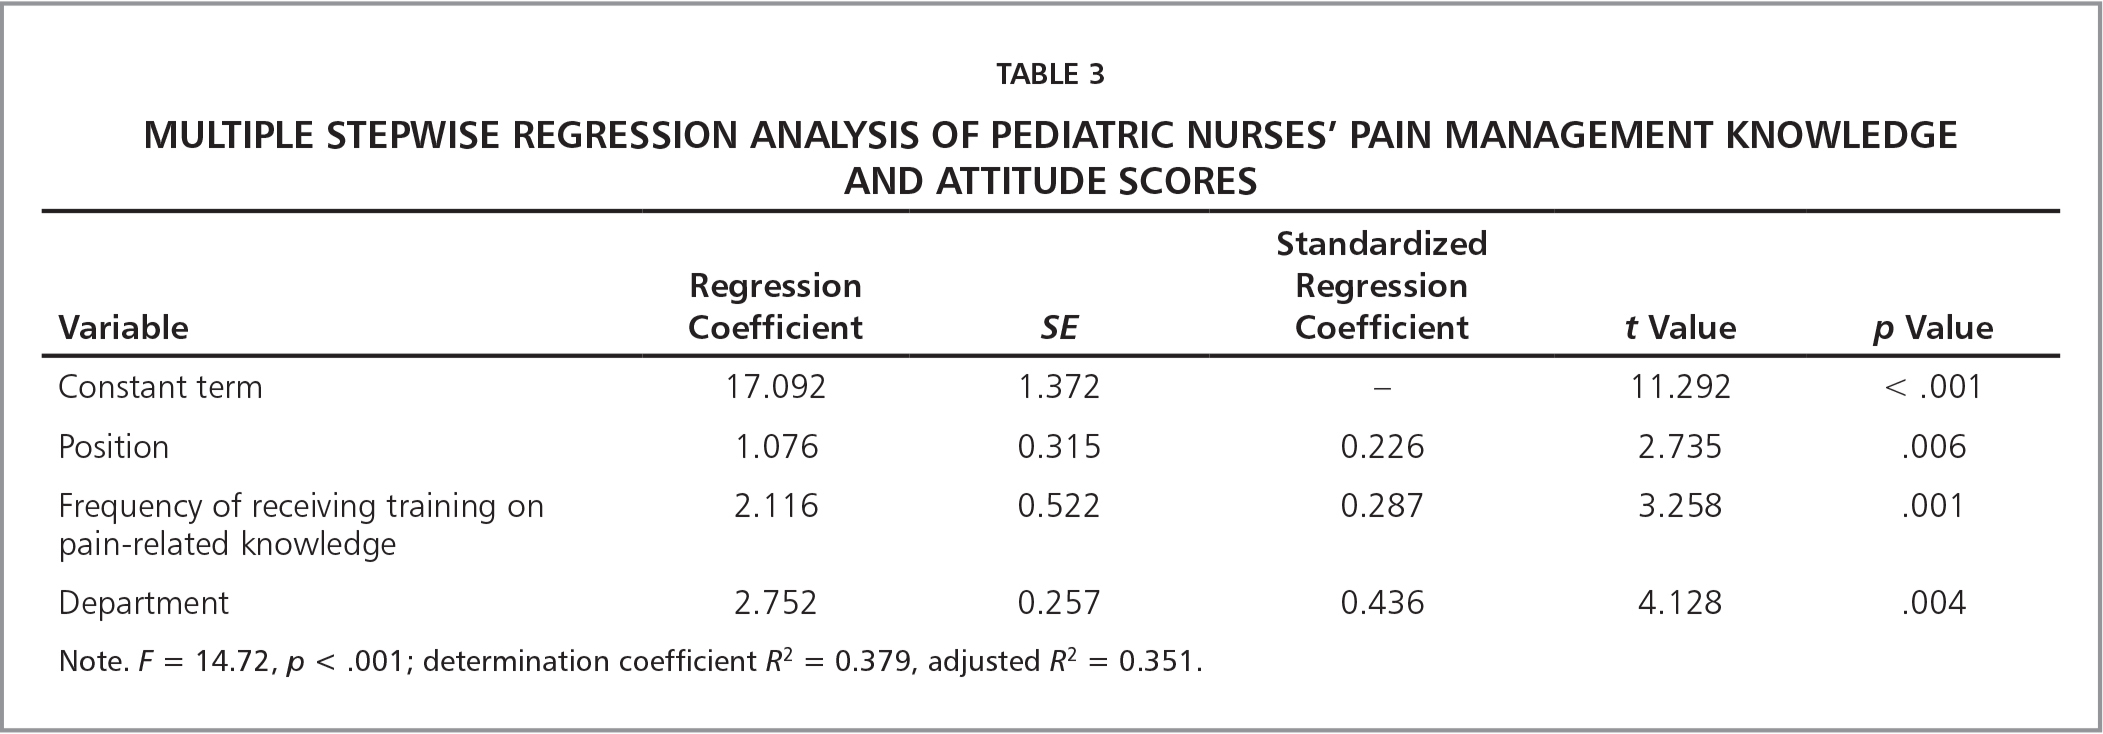 Multiple Stepwise Regression Analysis of Pediatric Nurses' Pain Management Knowledge and Attitude Scores